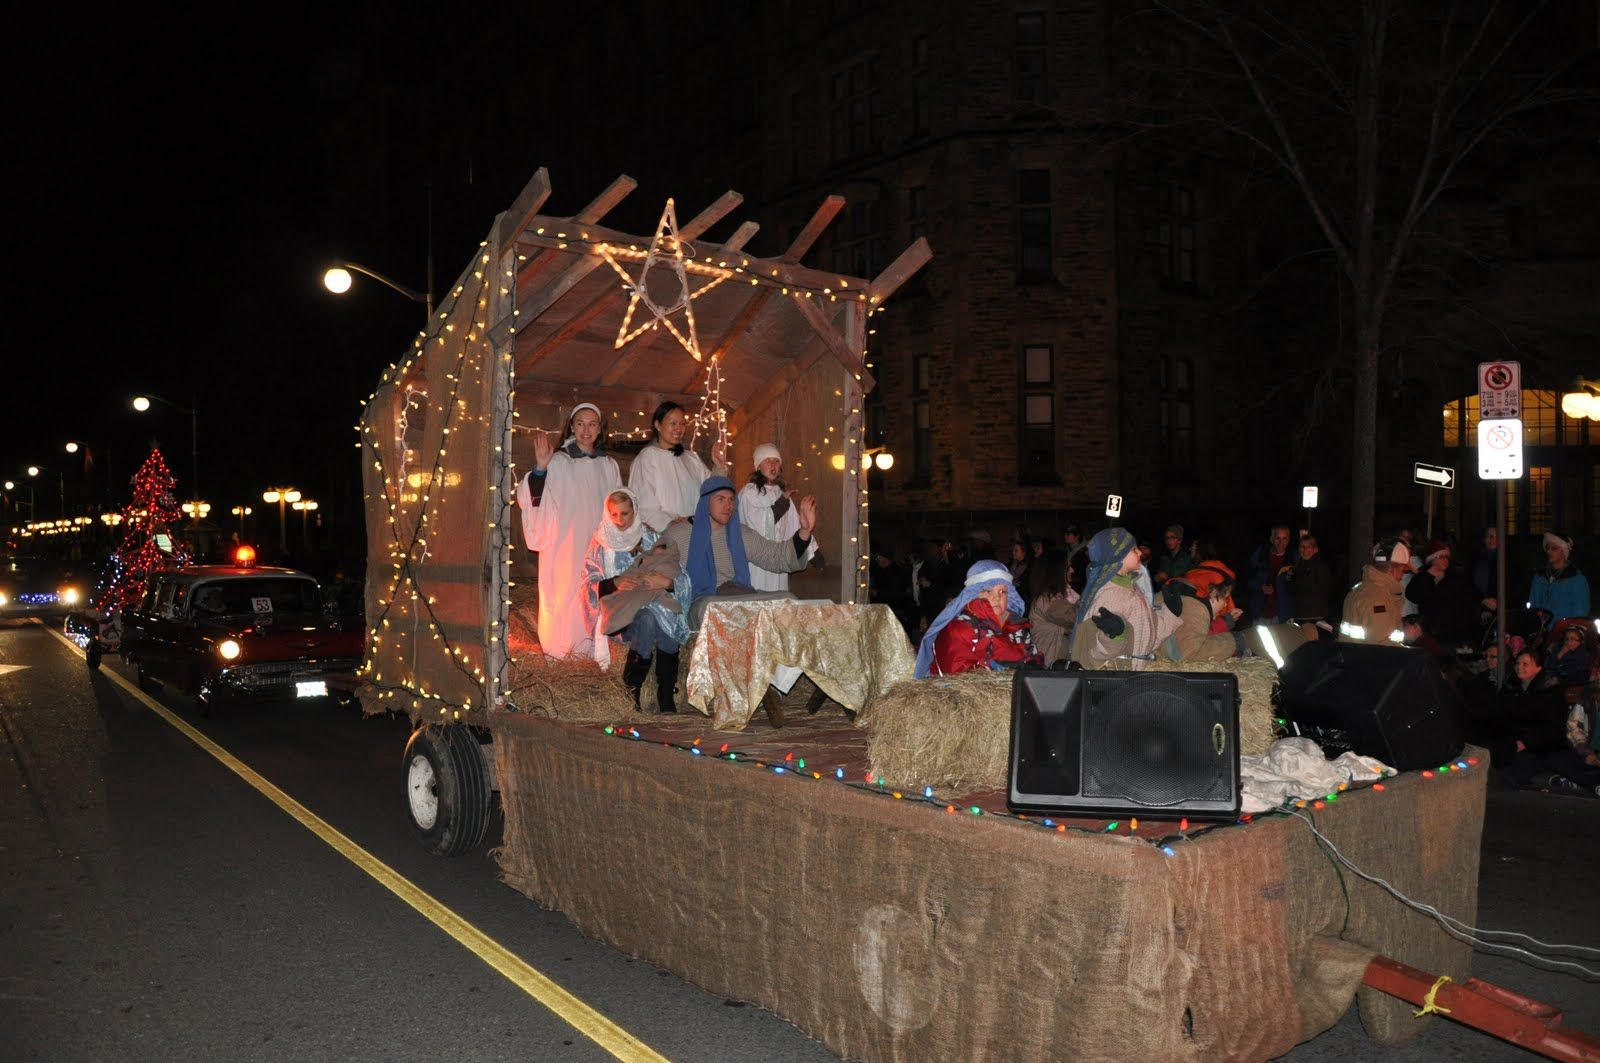 Christmas Float Ideas With Lights.Church Christmas Floats Get Involved Too Many Holiday